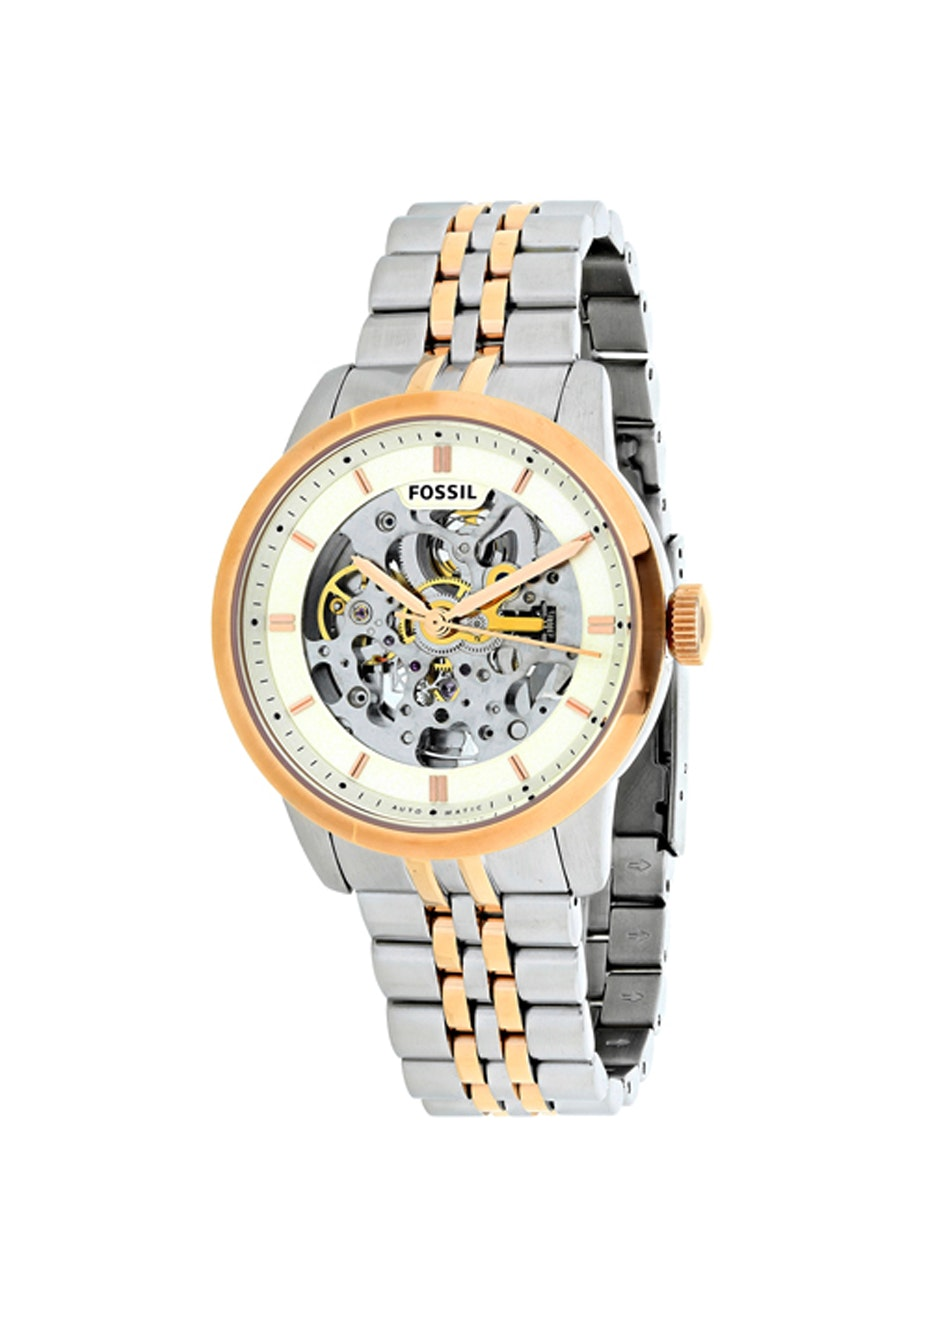 Fossil Men's Townsman - Off-White/Two tone Silver